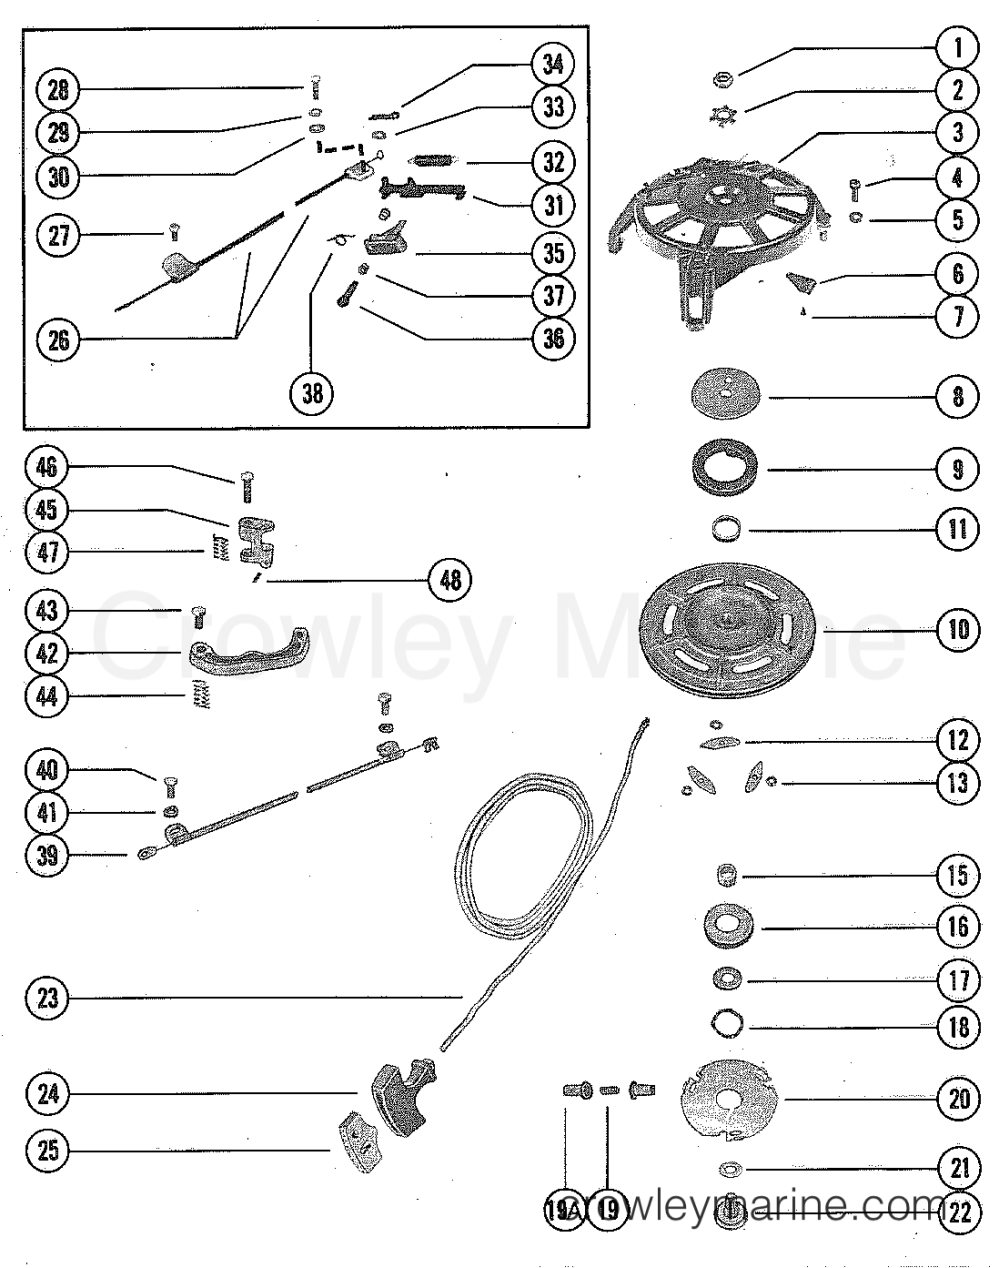 medium resolution of 1976 mercury outboard 50 1500206 starter housing manual section